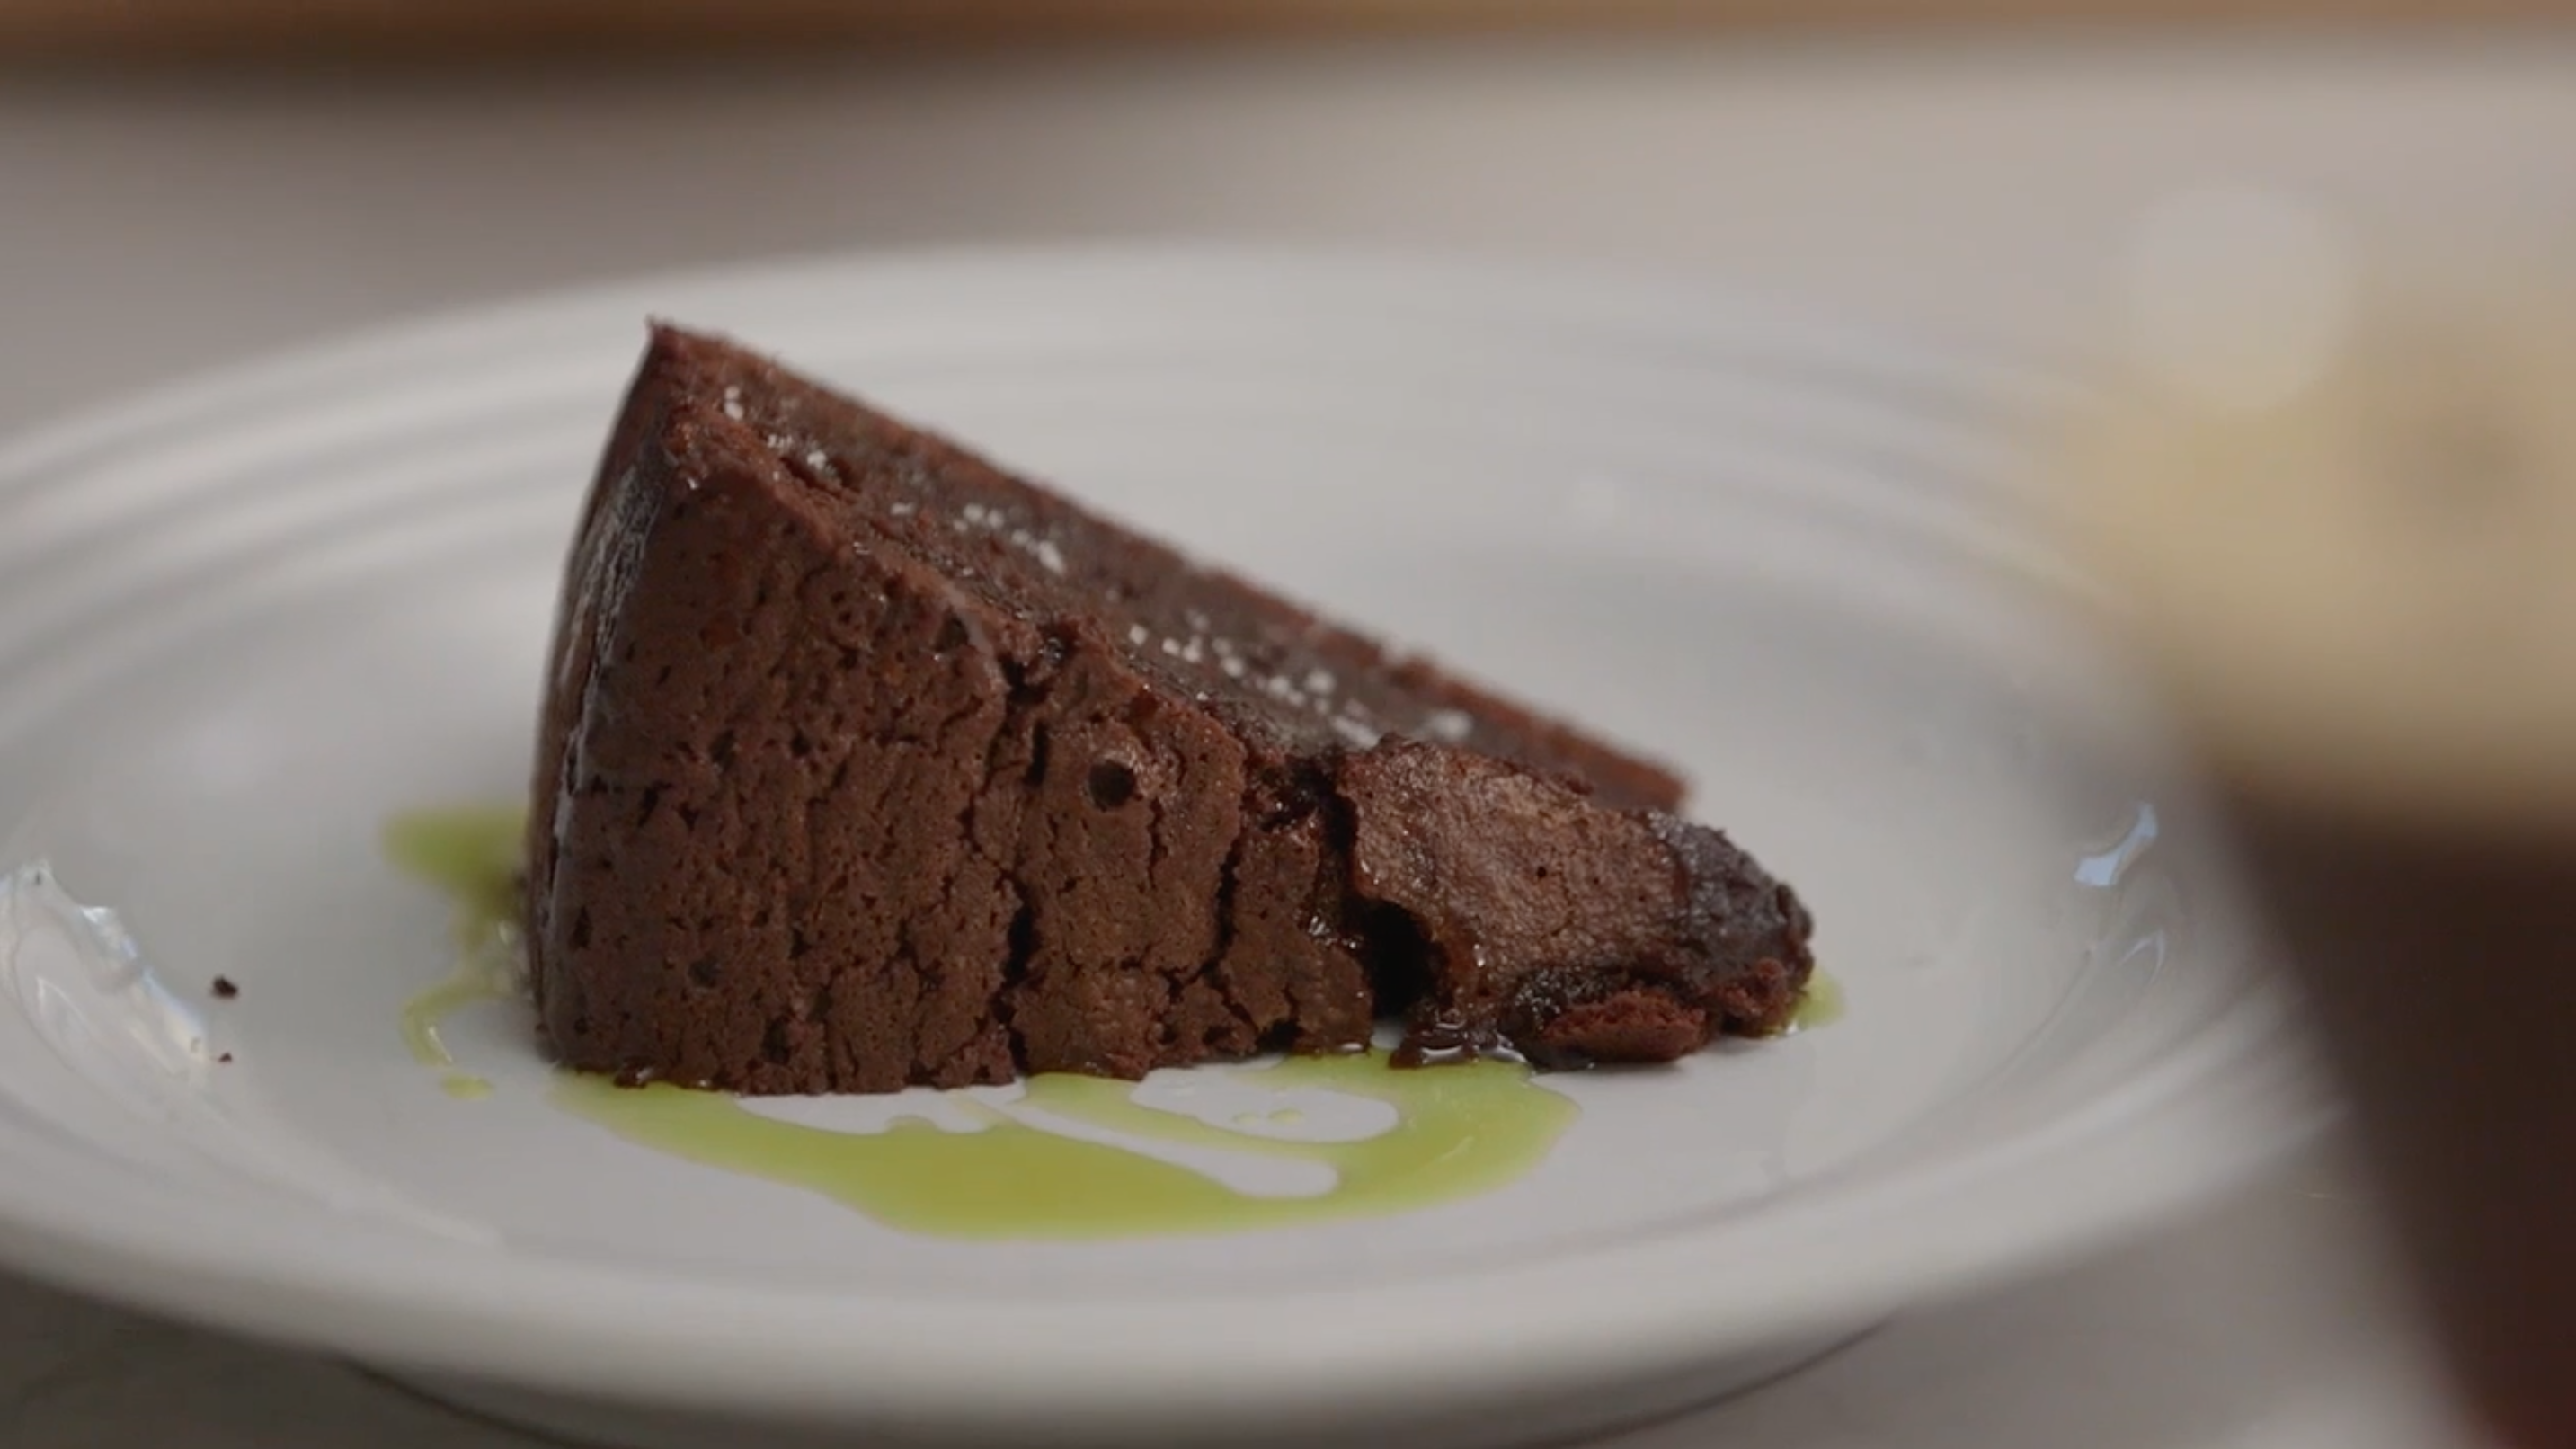 Ludo Lefebvre's Chocolate Cake Goes Great With His Espresso Martini